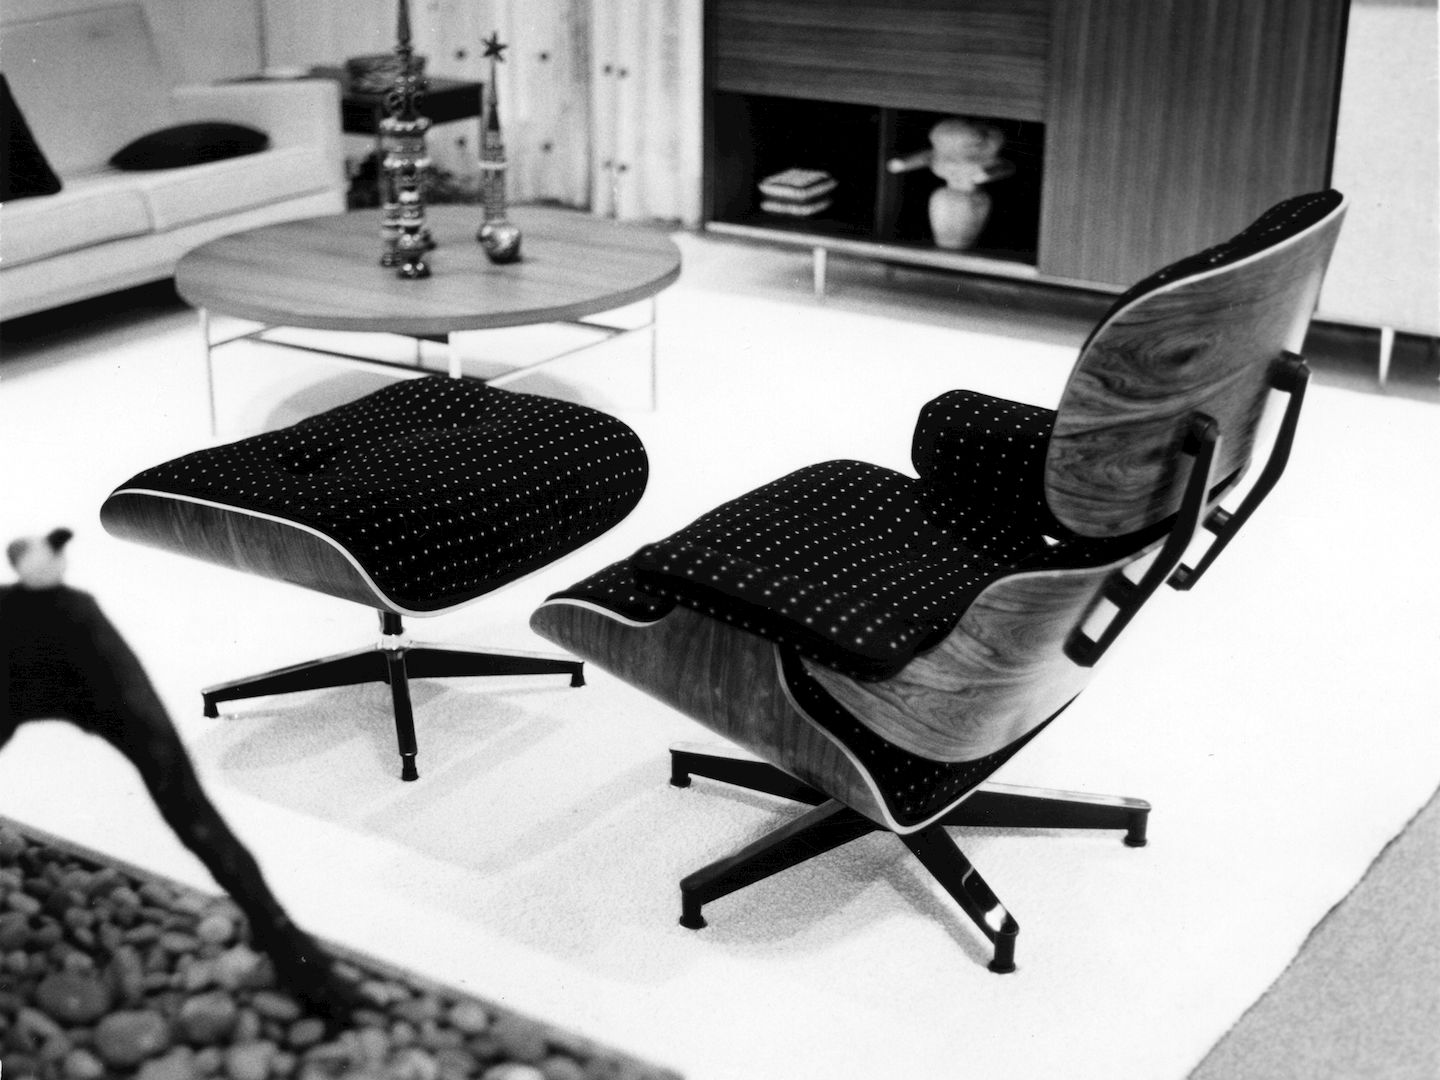 An Eames Lounge Chair In Fabric? Really?